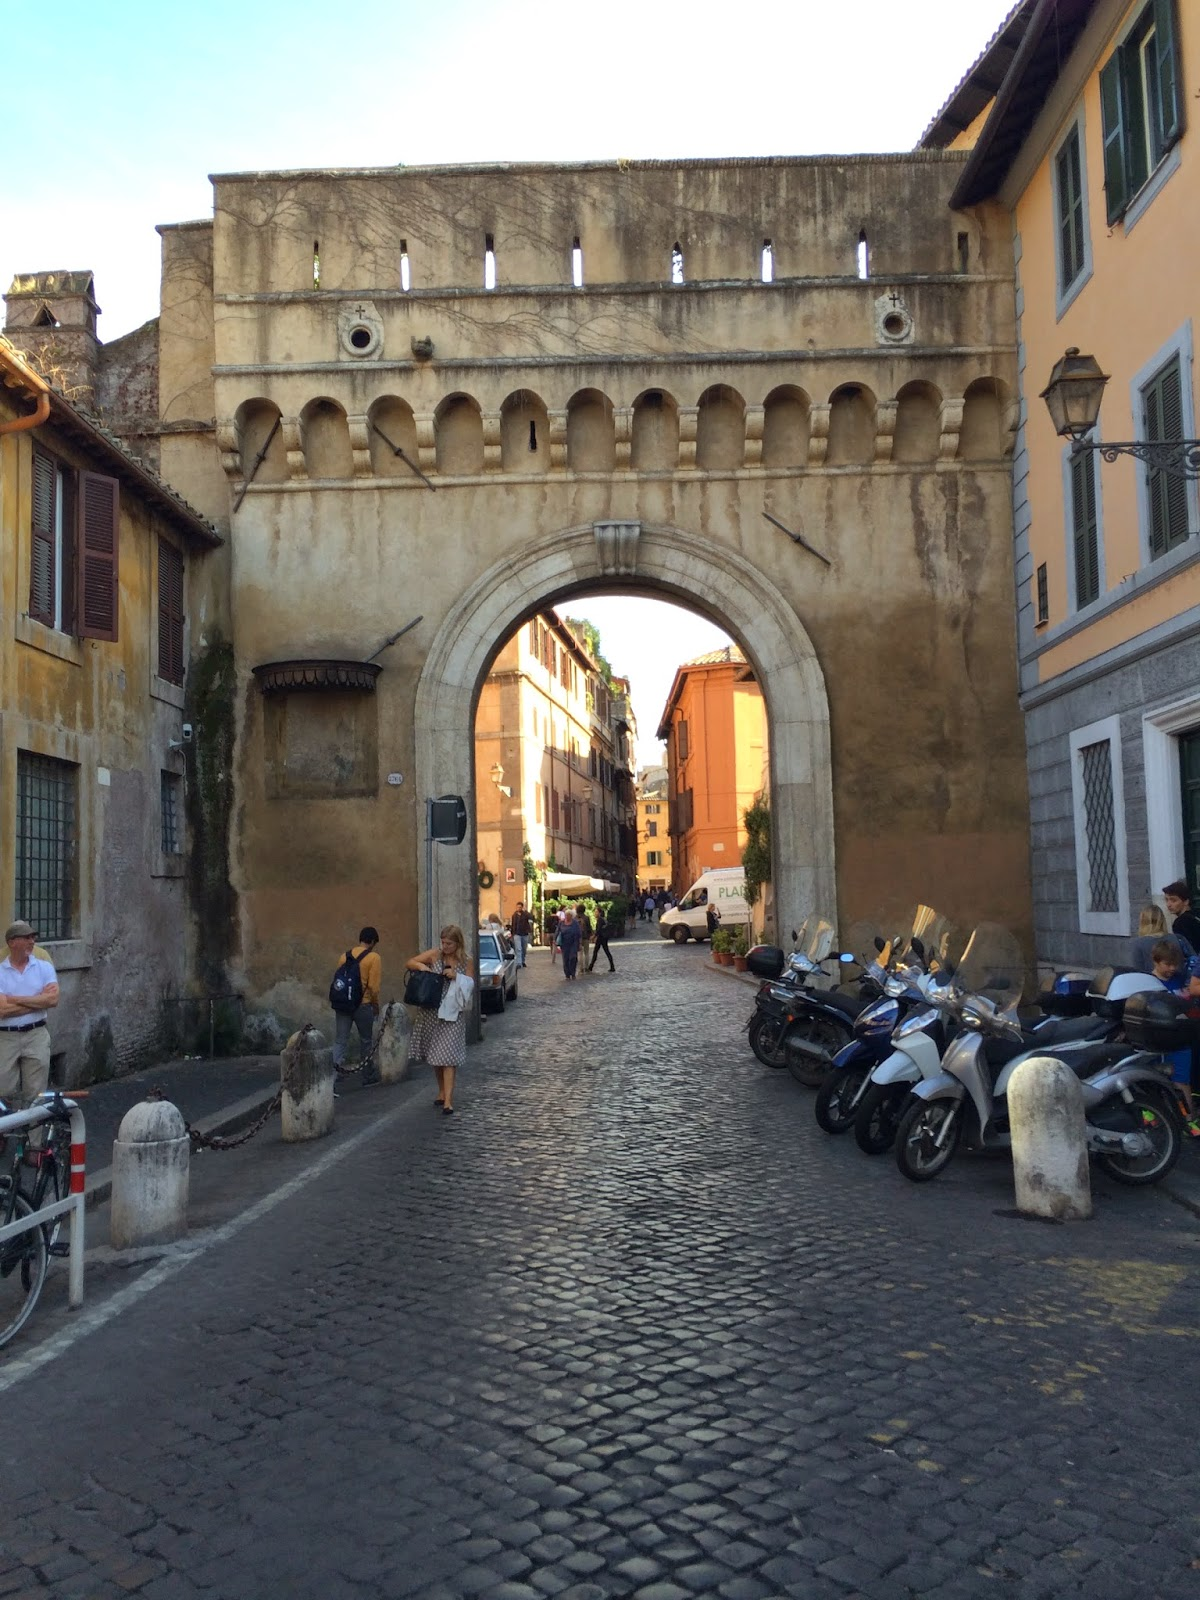 5-Things-I-Adore-About-Rome-Walking-In-Rome